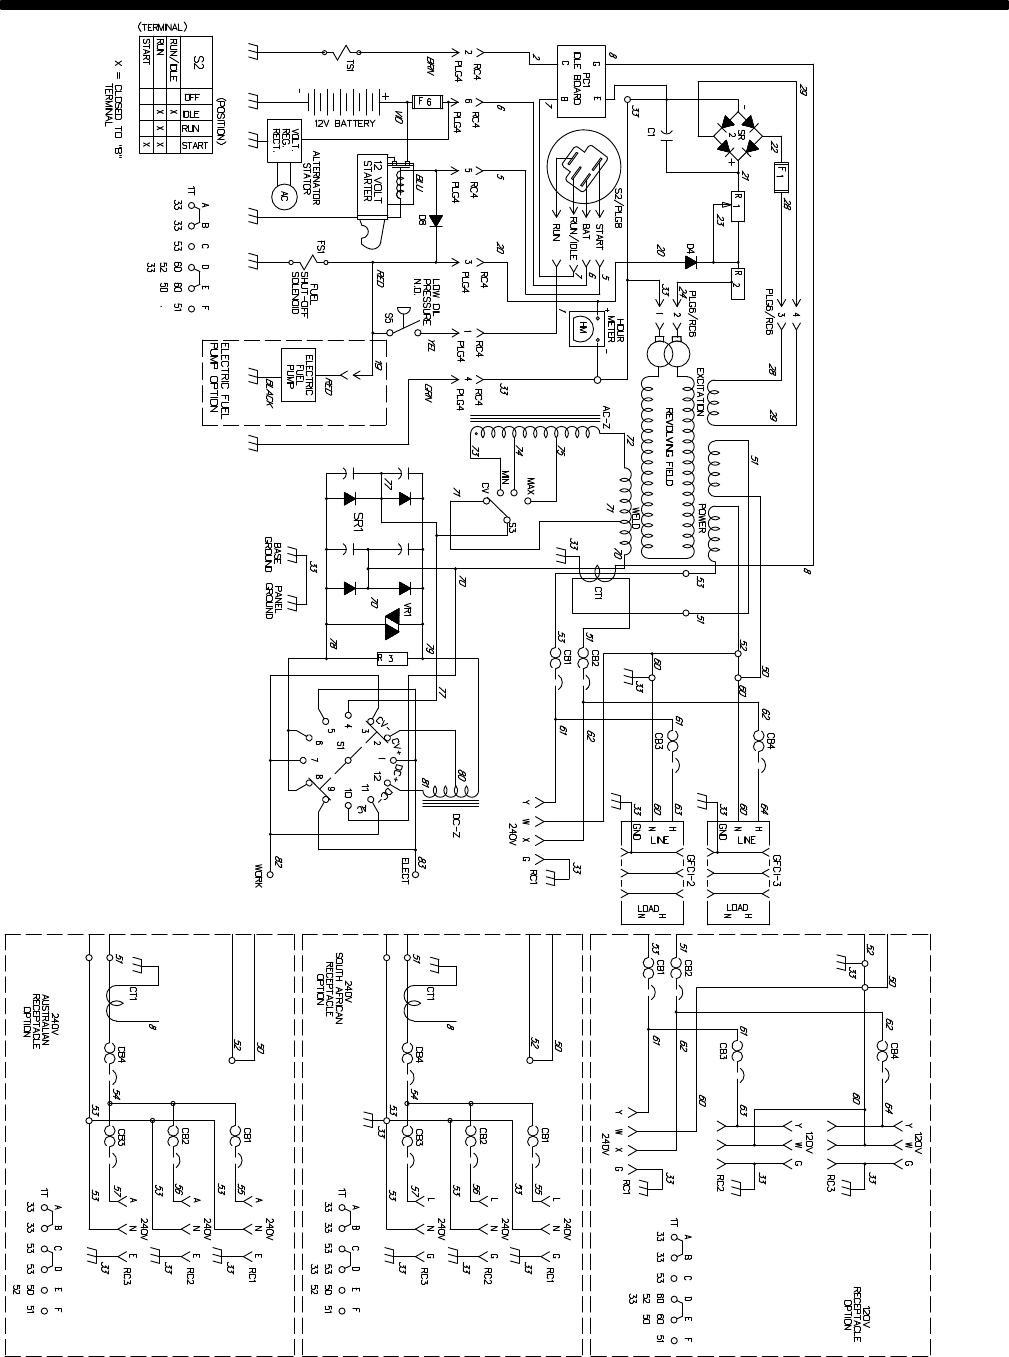 d3bdac77 e713 43b4 a88f 6532334b38fe bg16 miller bobcat wiring diagram miller wiring diagrams instruction Basic Electrical Wiring Diagrams at nearapp.co